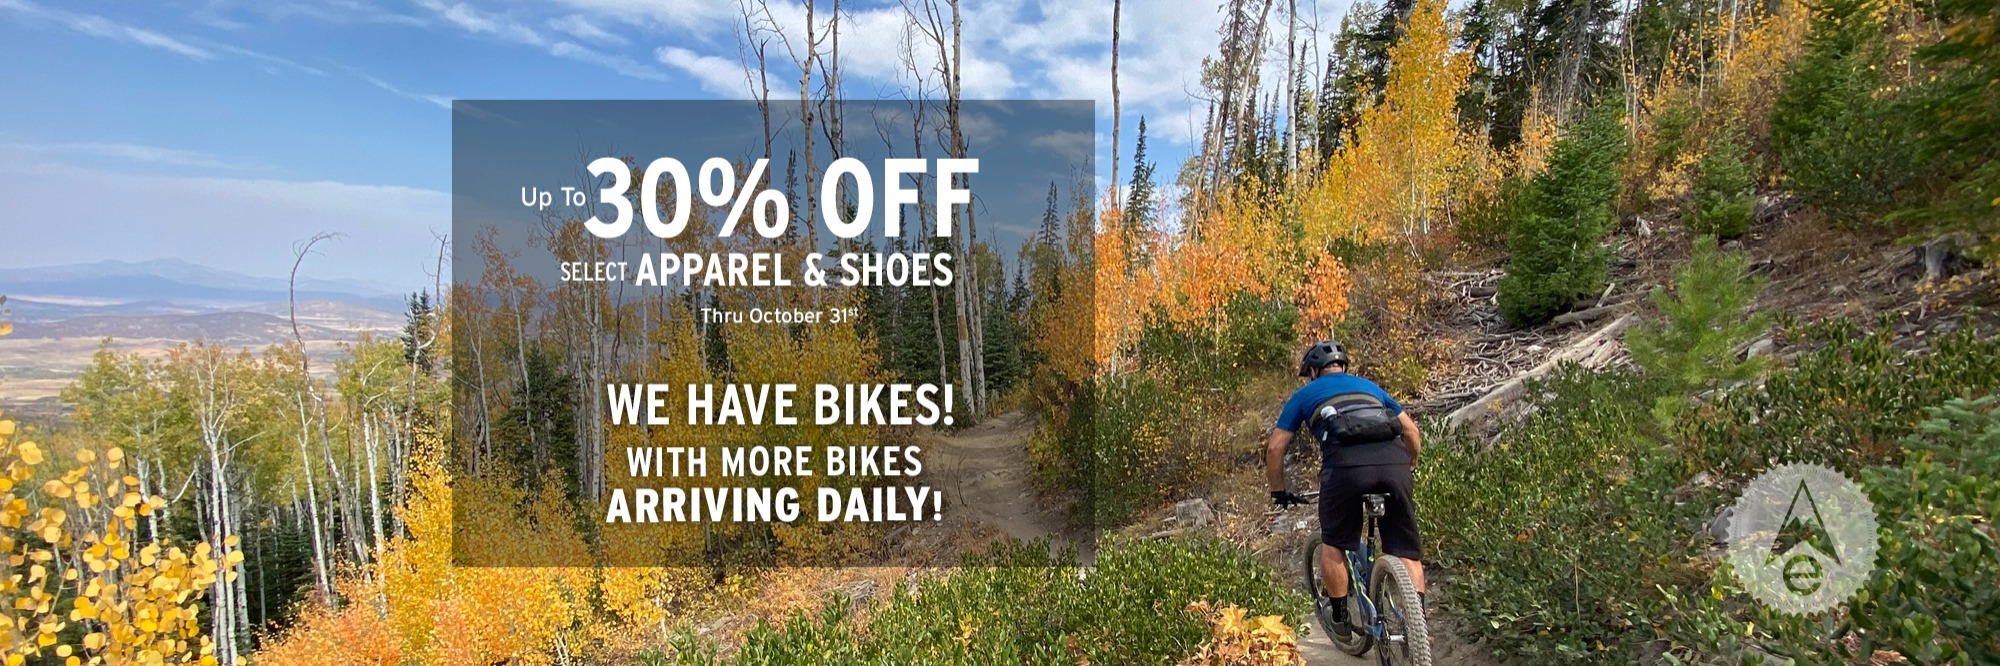 30% Off Bike Apparel & Bike Shoes Denver Colorado October 2020